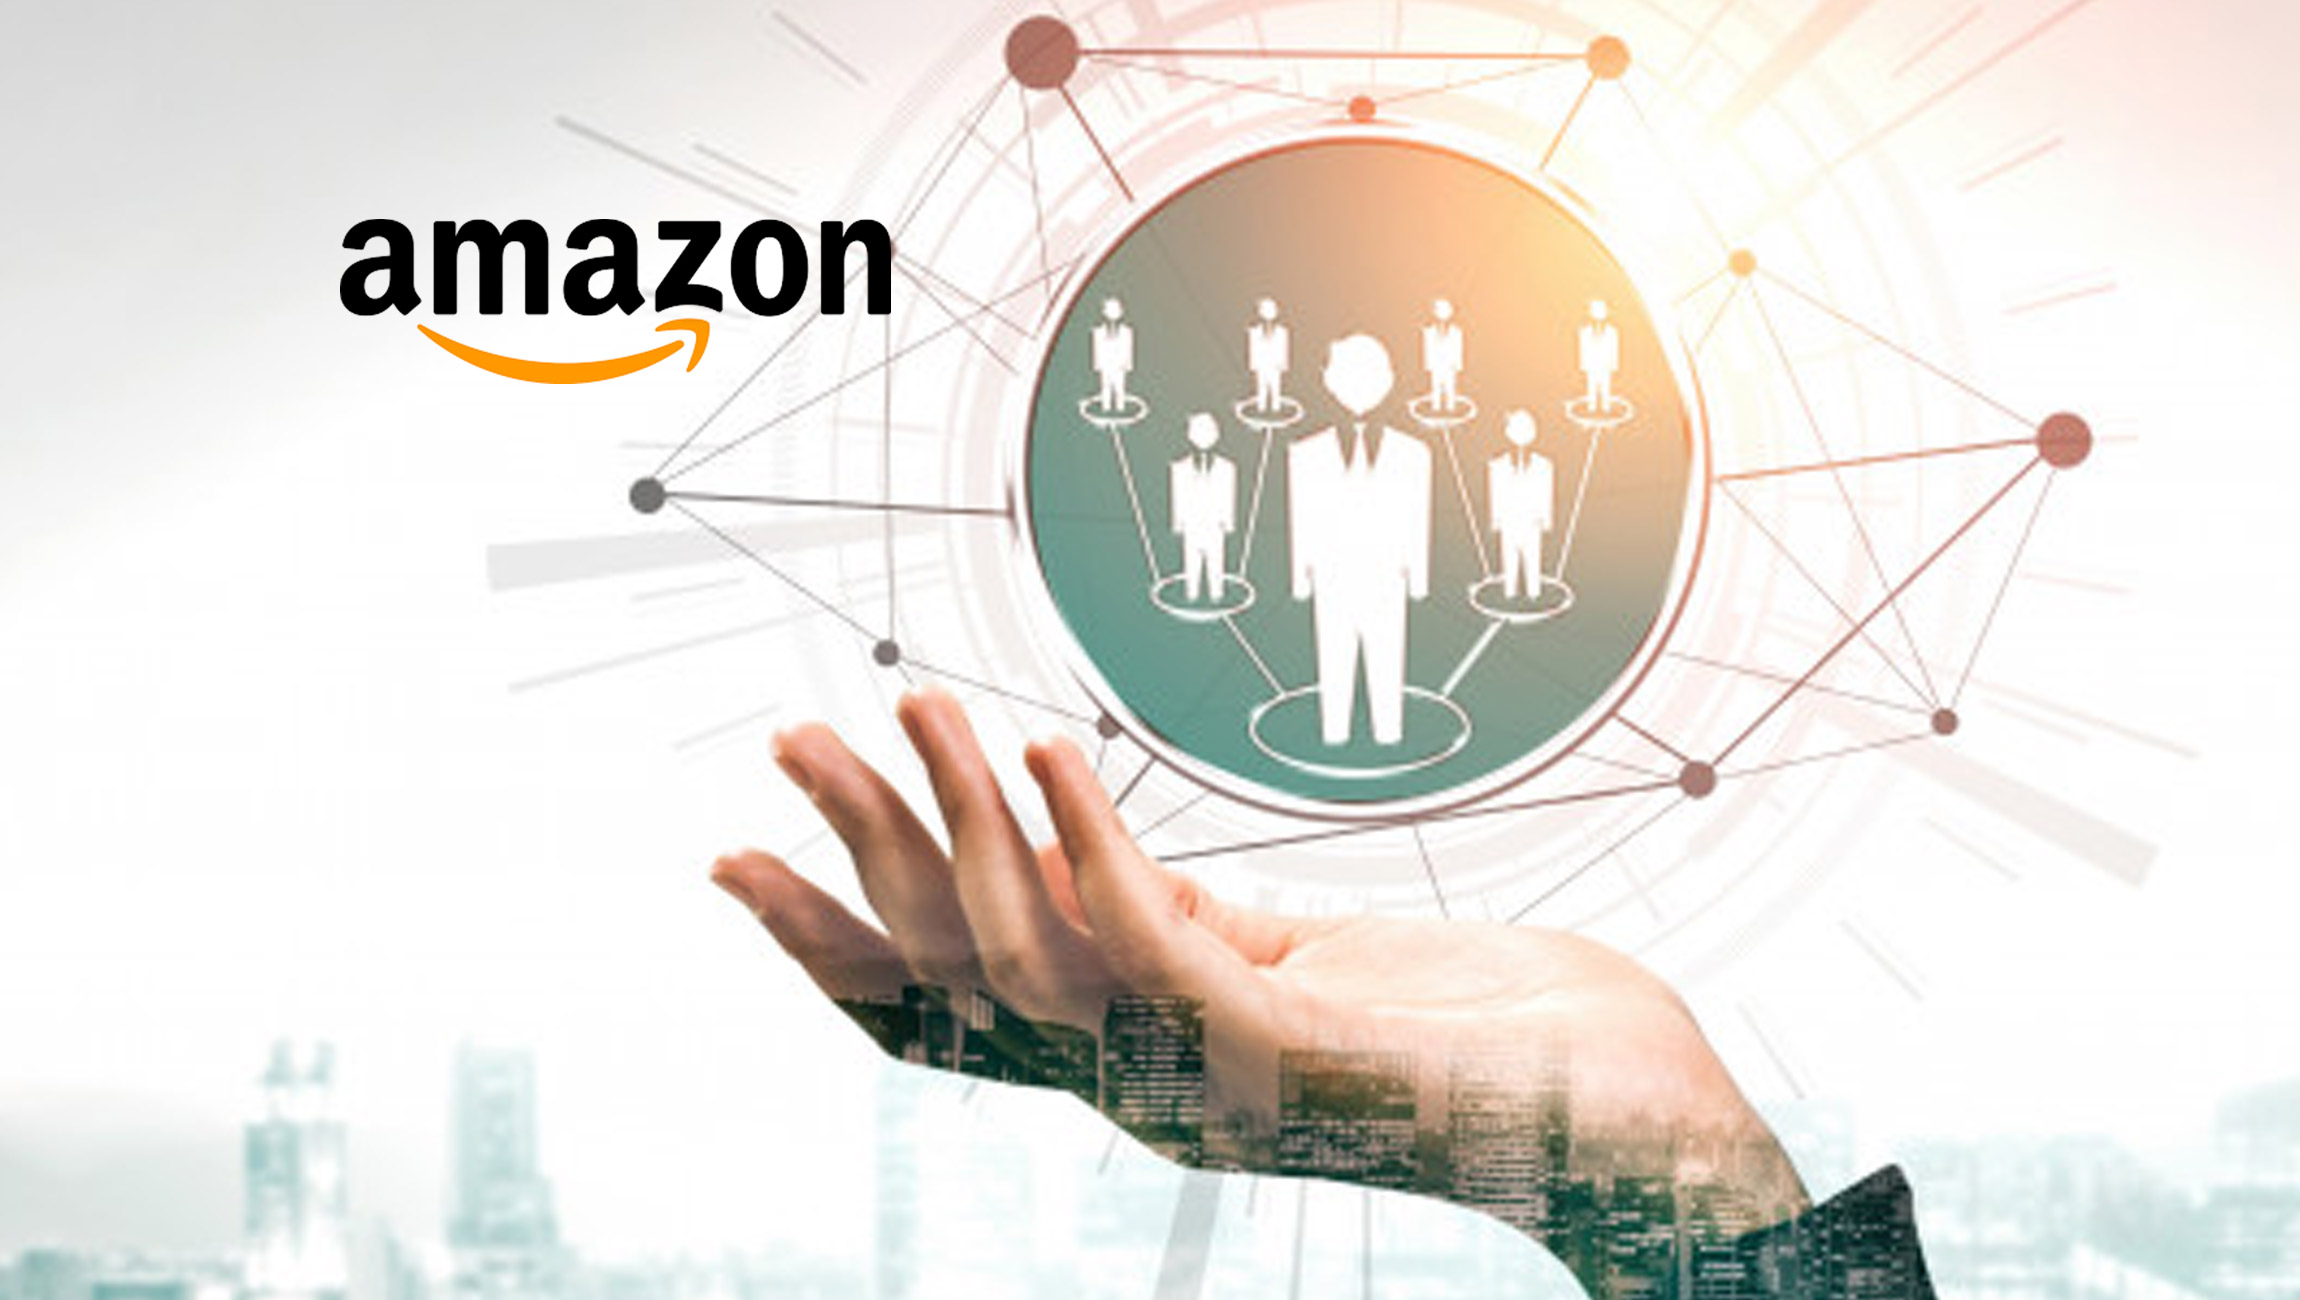 Amazon Announces First Fulfillment Center in St. Lucie County, FL